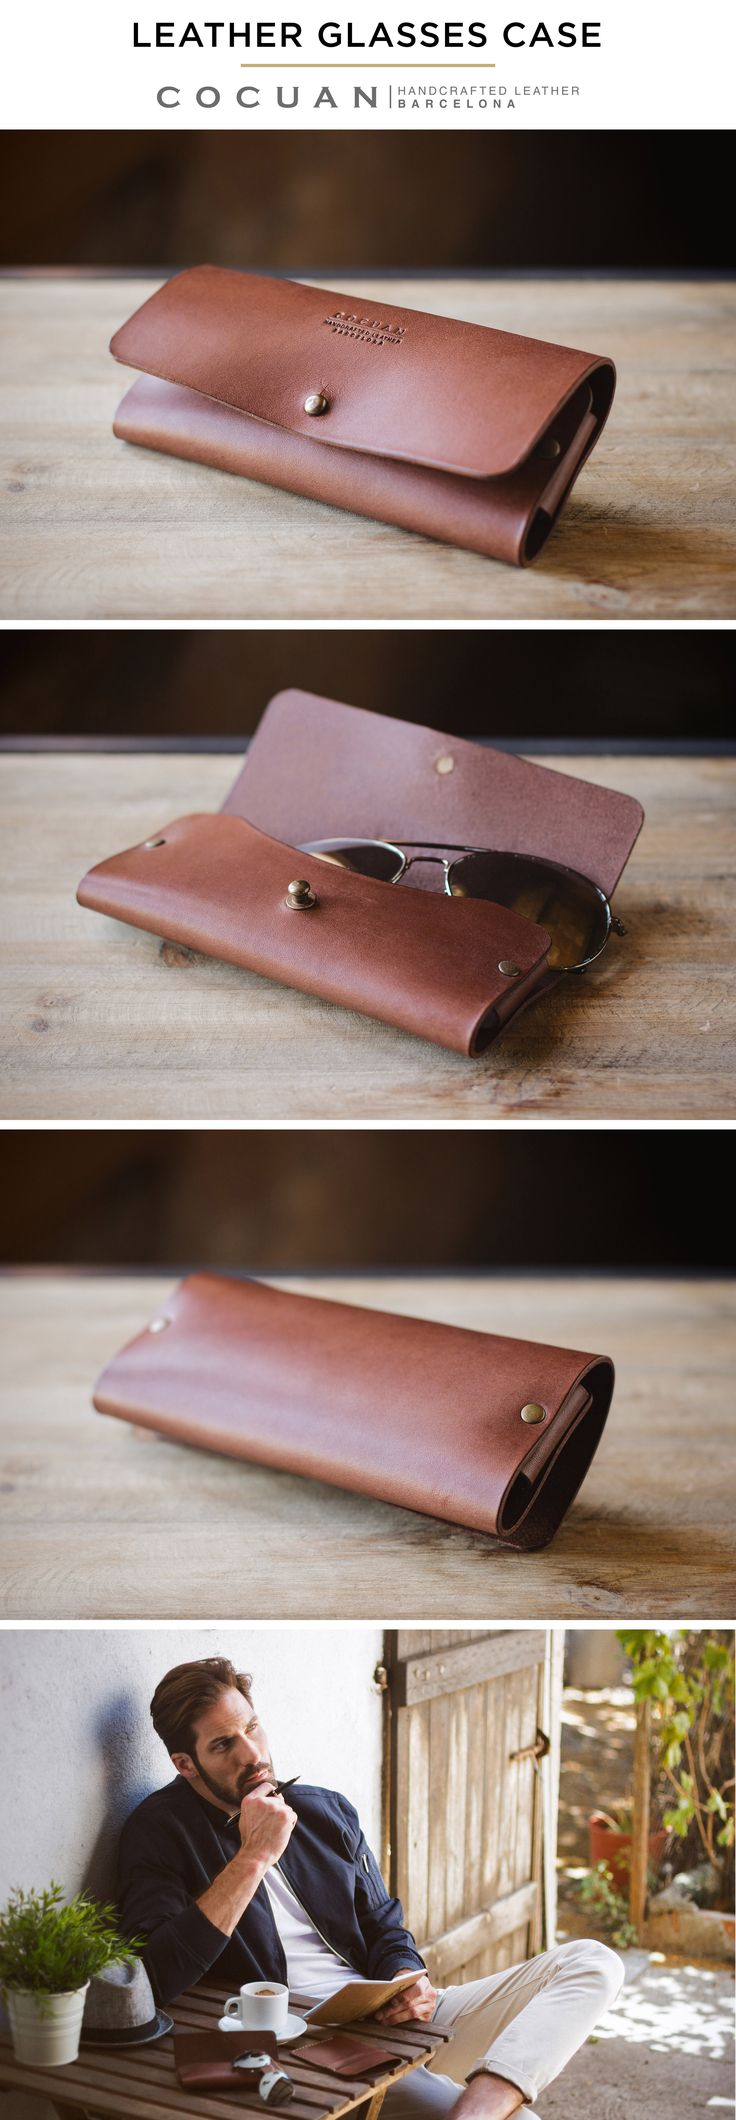 LEATHER GLASSES CASE www.cocuan.com